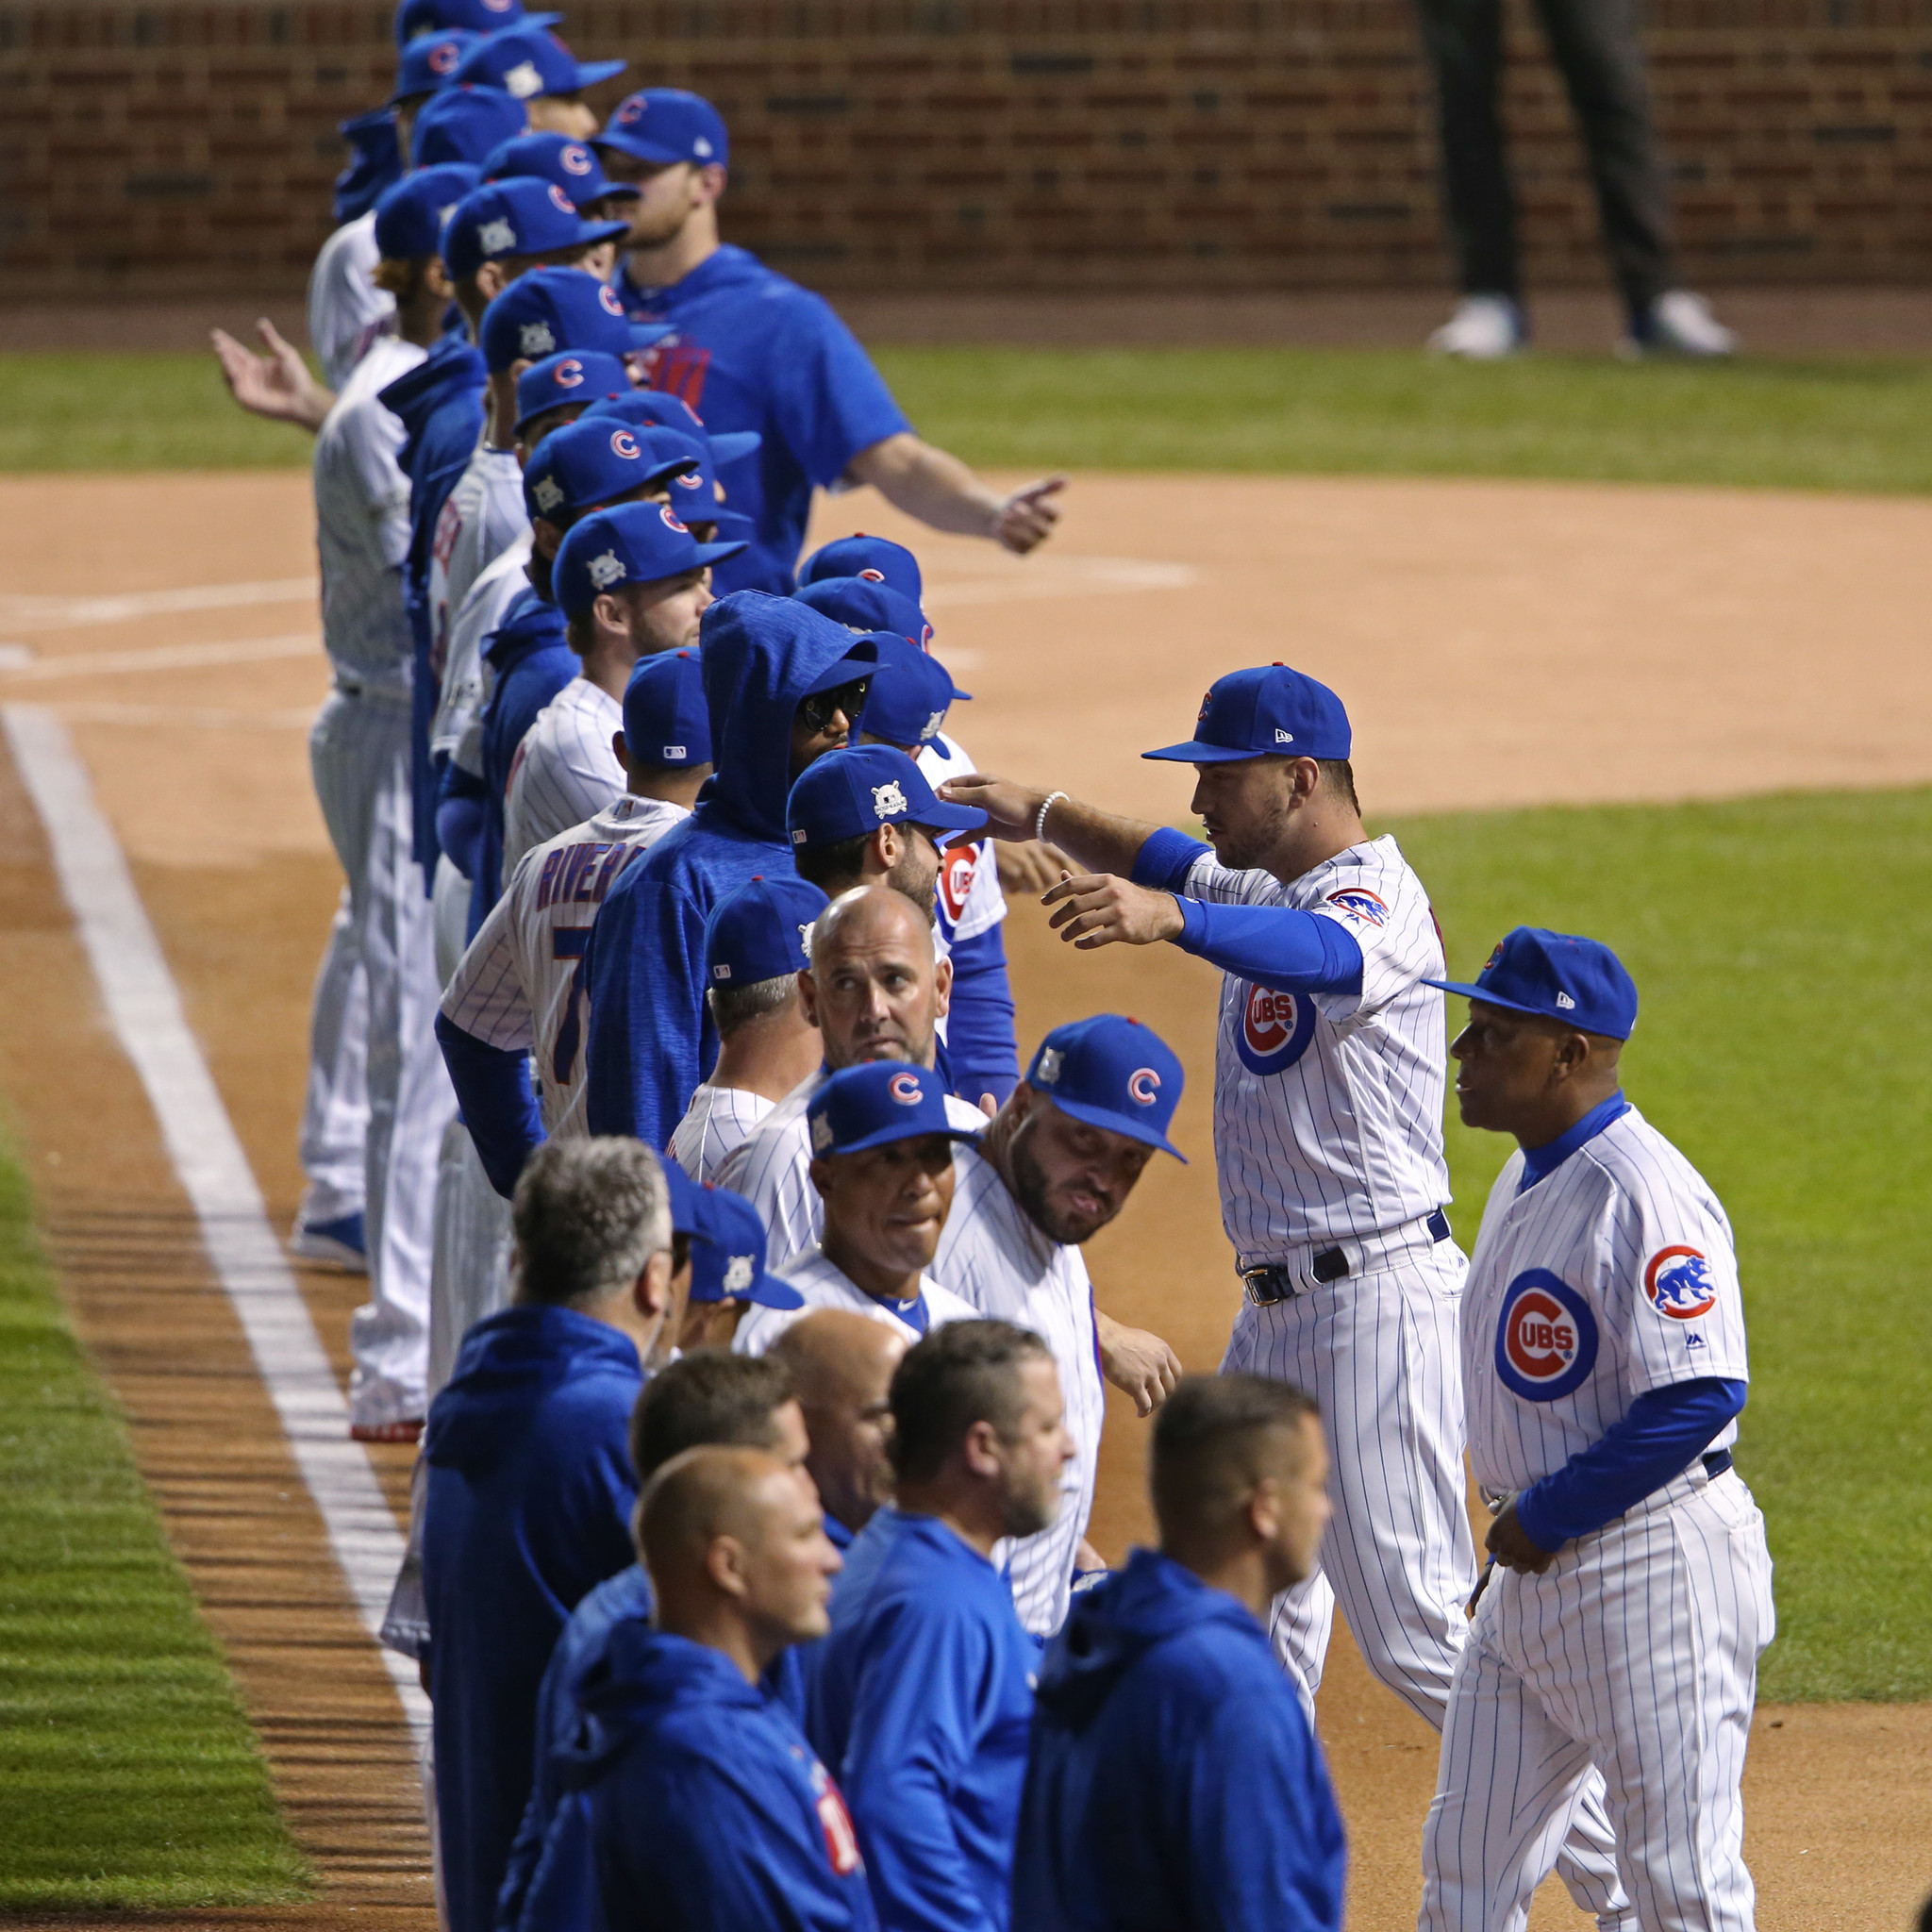 Do the Cubs realize how badly the Dodgers insulted them on national TV?